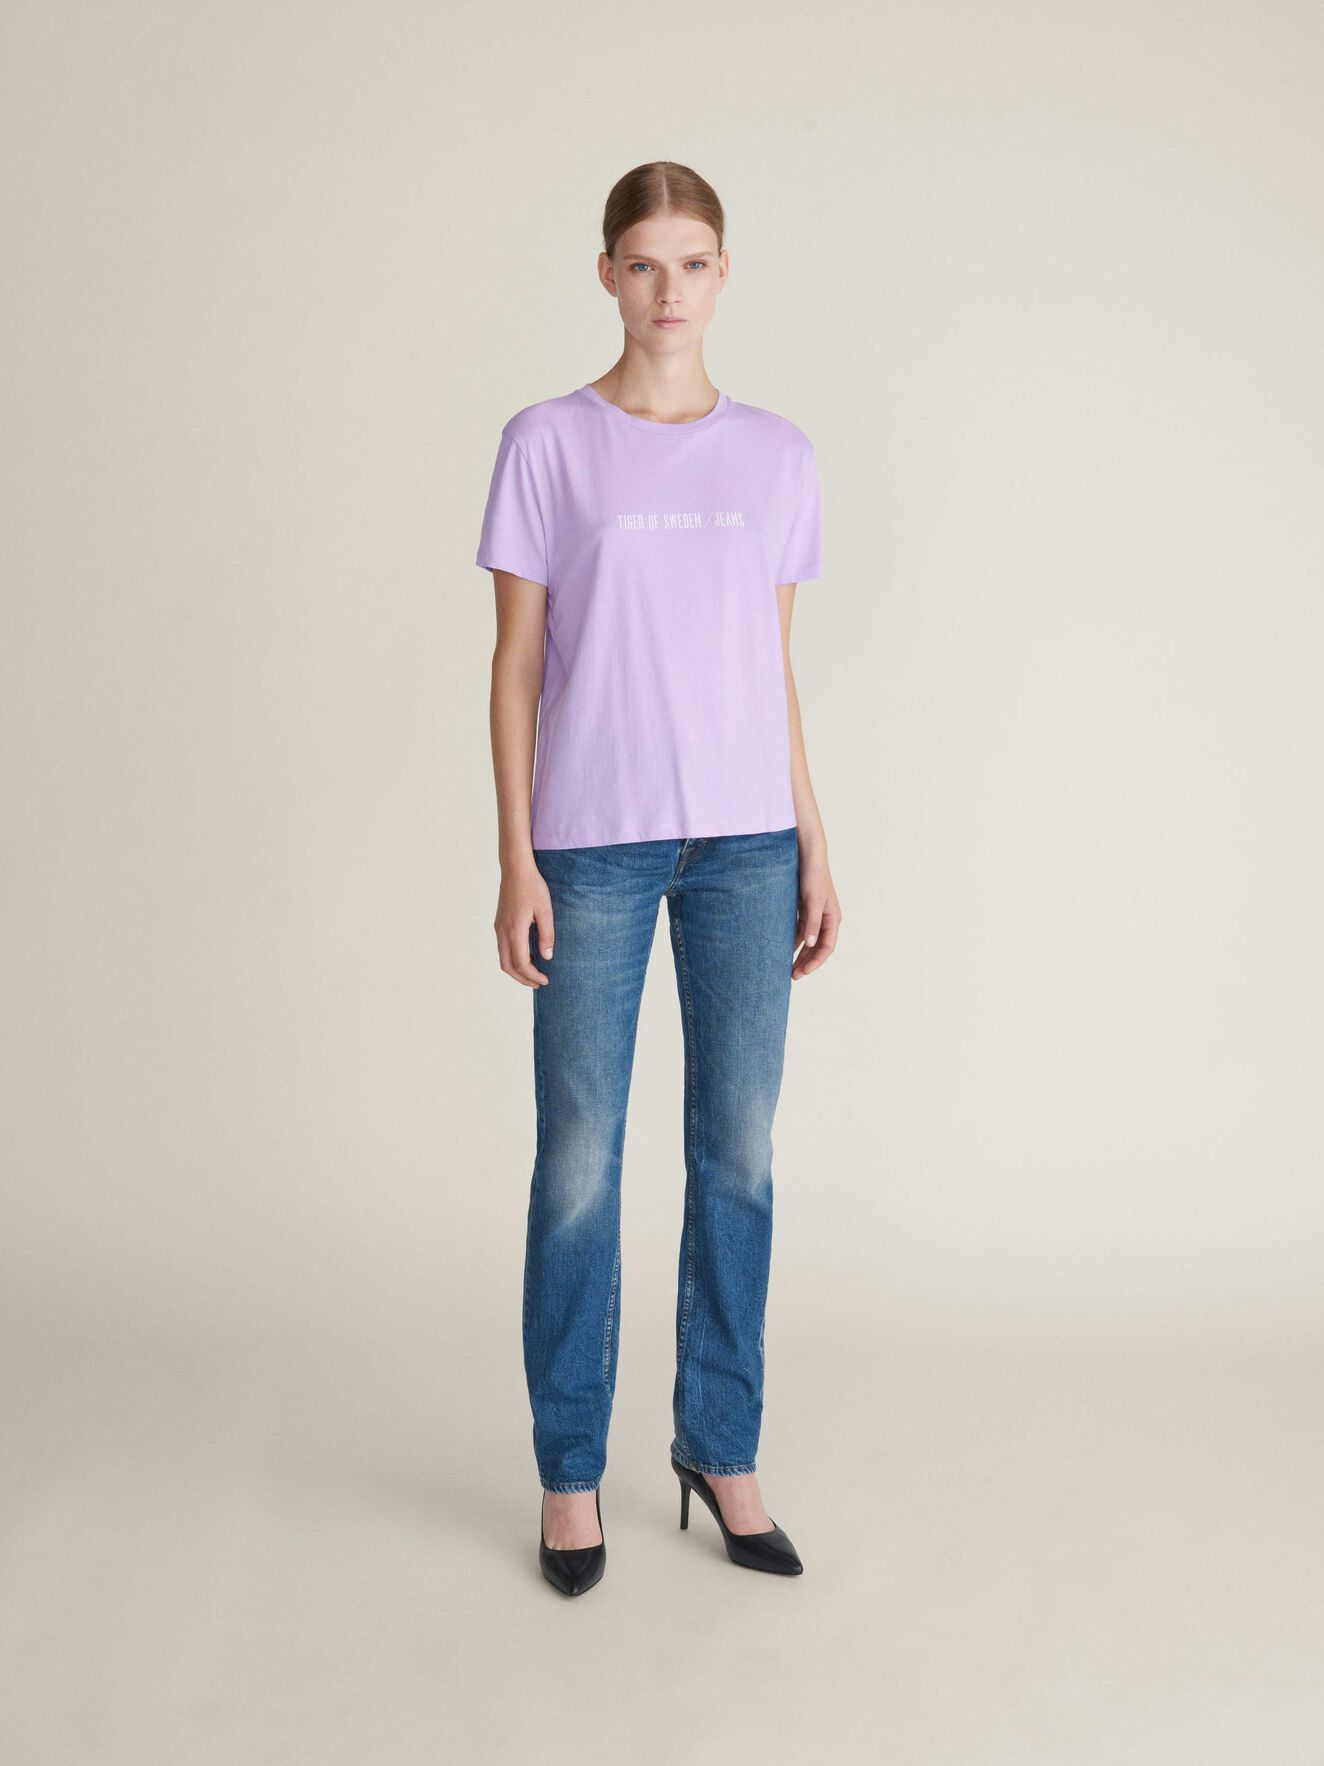 Dawn Print-T-Shirt in Lilac Breeze from Tiger of Sweden